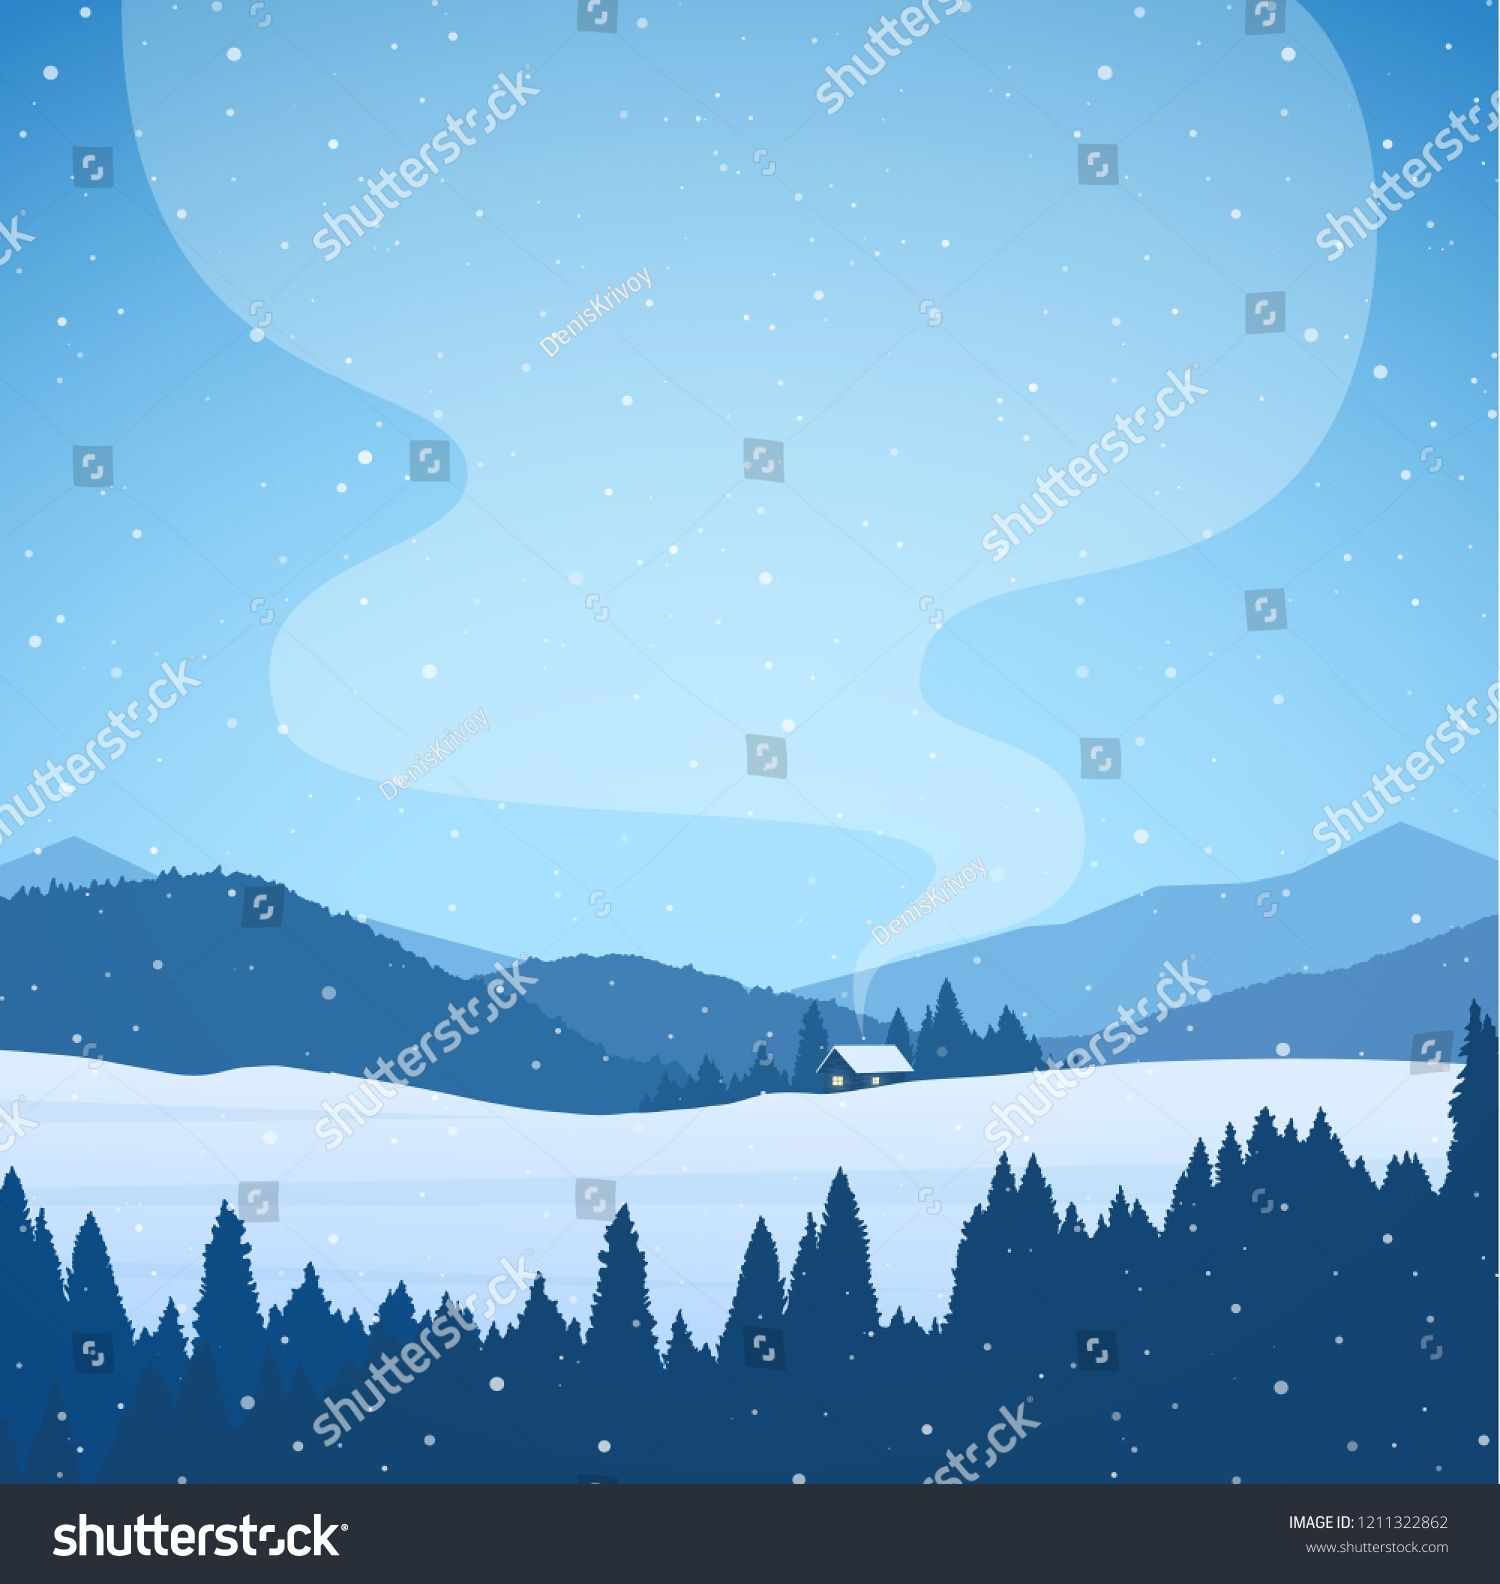 Vector Illustration Winter Cartoon Snowy Mountains Landscape With Forest House And Smoke From Chimney Ca Mountain Landscape Vector Illustration Illustration